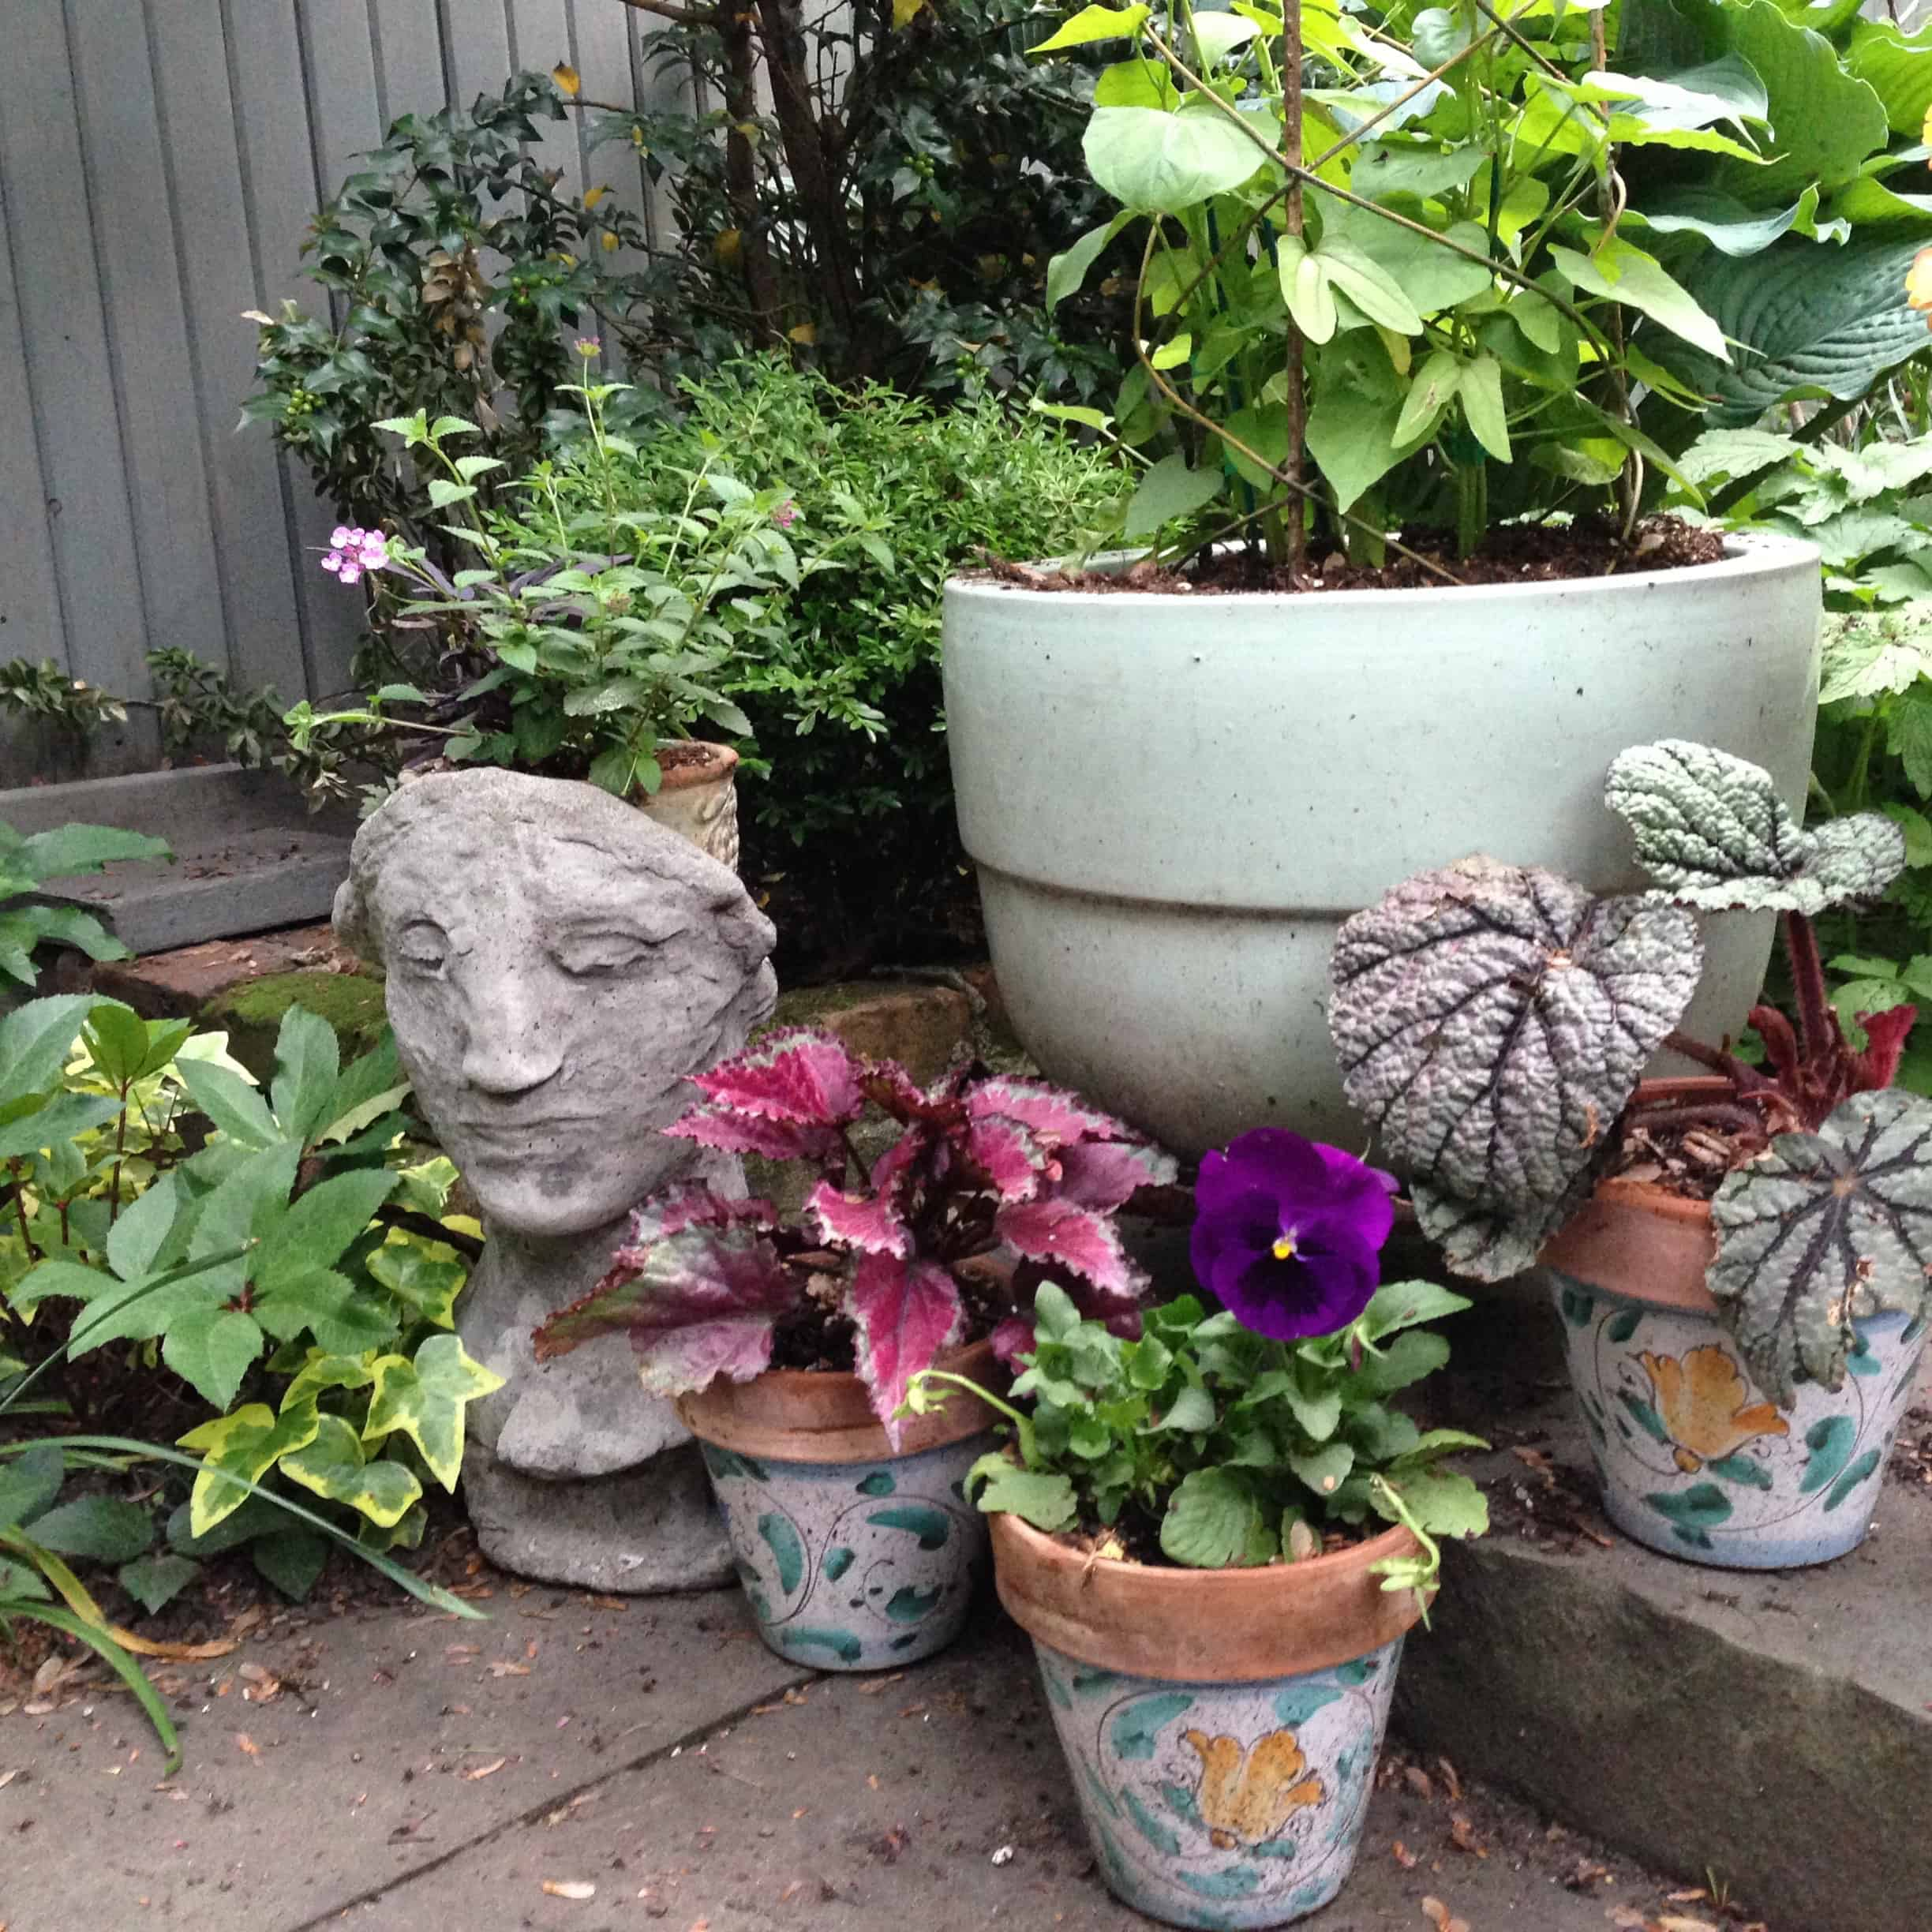 """Some pots. I love the """"iron maiden"""" pot, and giving her a different crown of flowers each year."""